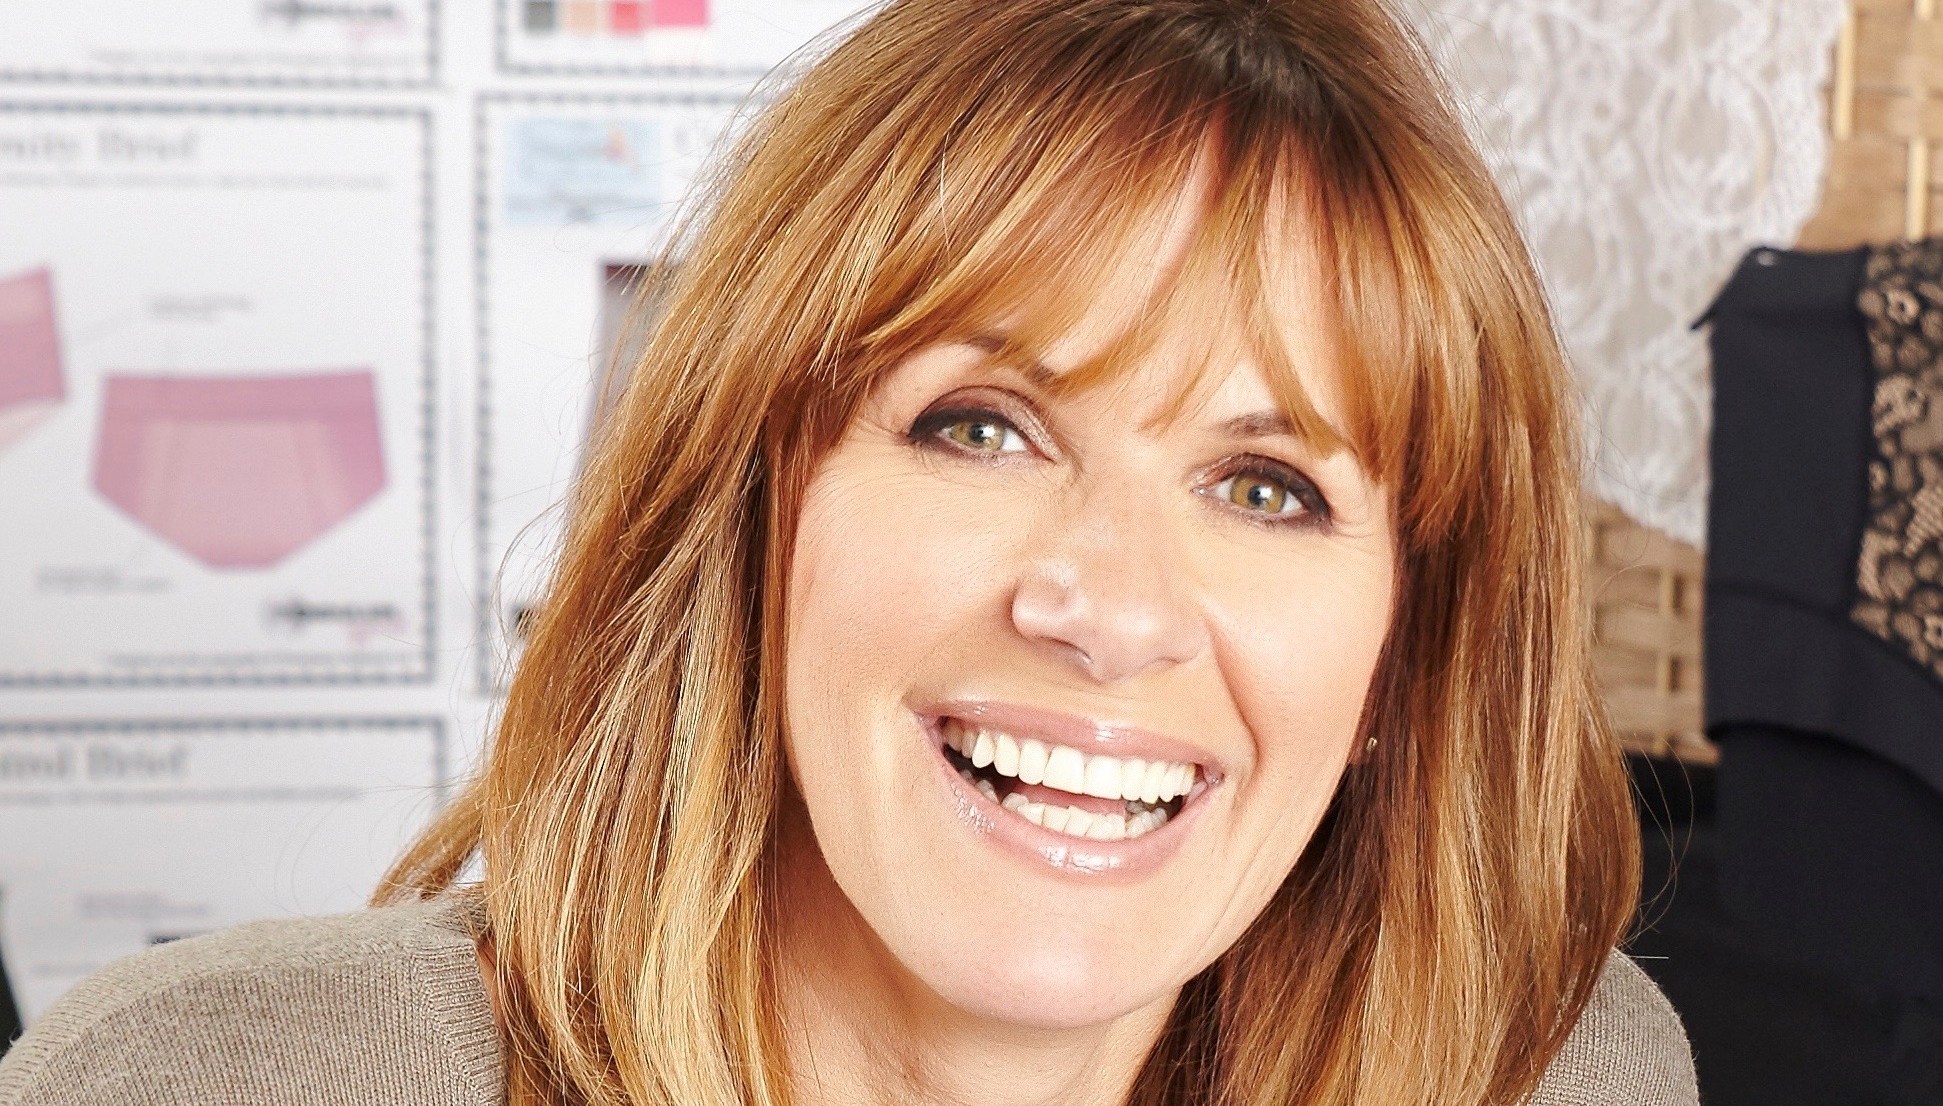 Interview: Carol Smillie launches new products for Women